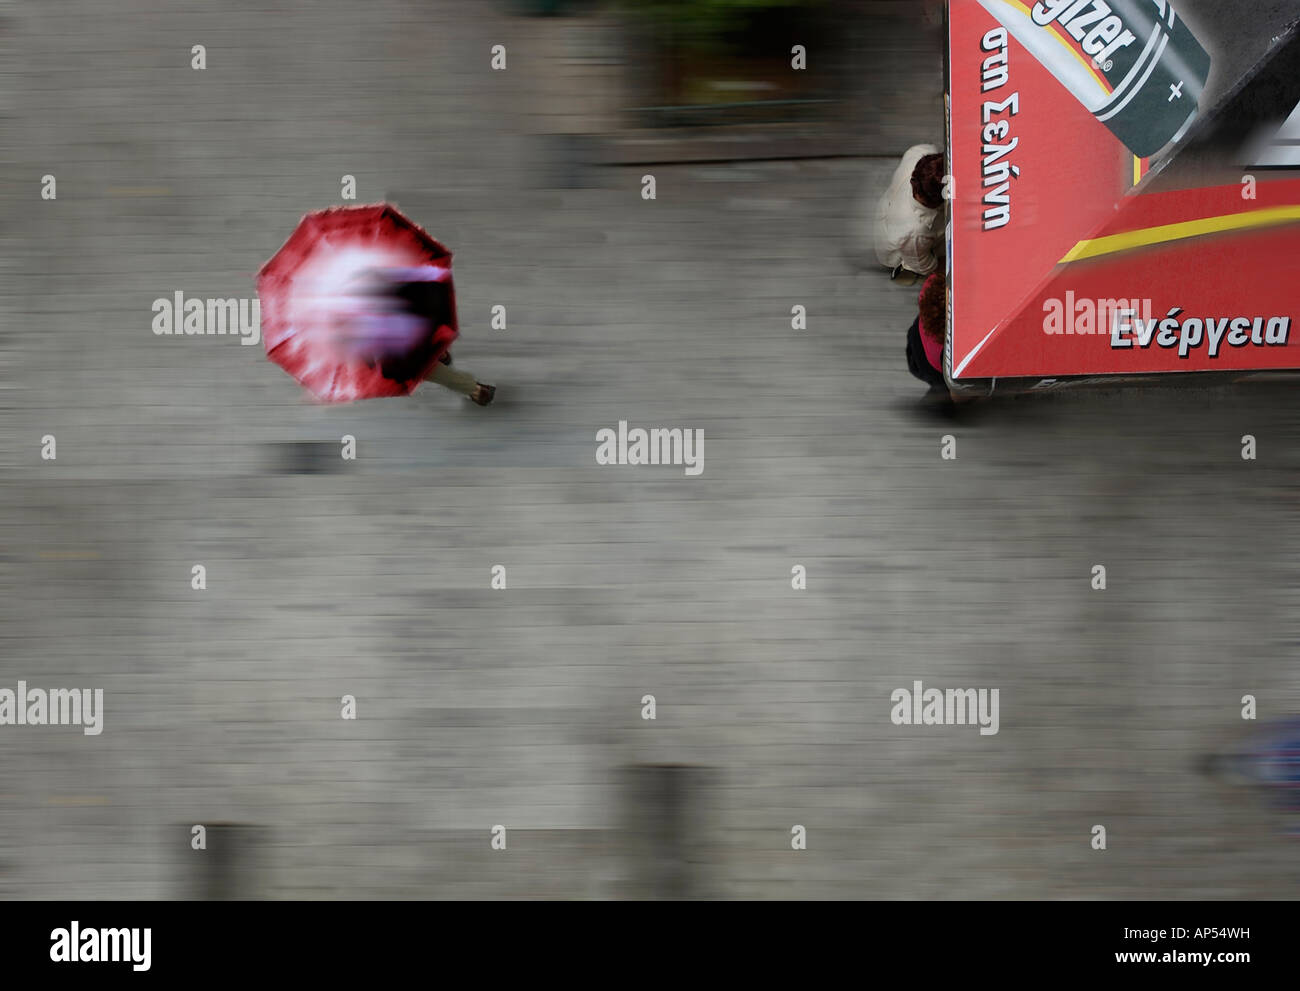 Impression of movement & energy in a top view of a street in Athens in the rain. Periptero - kiosk, shows part - Stock Image